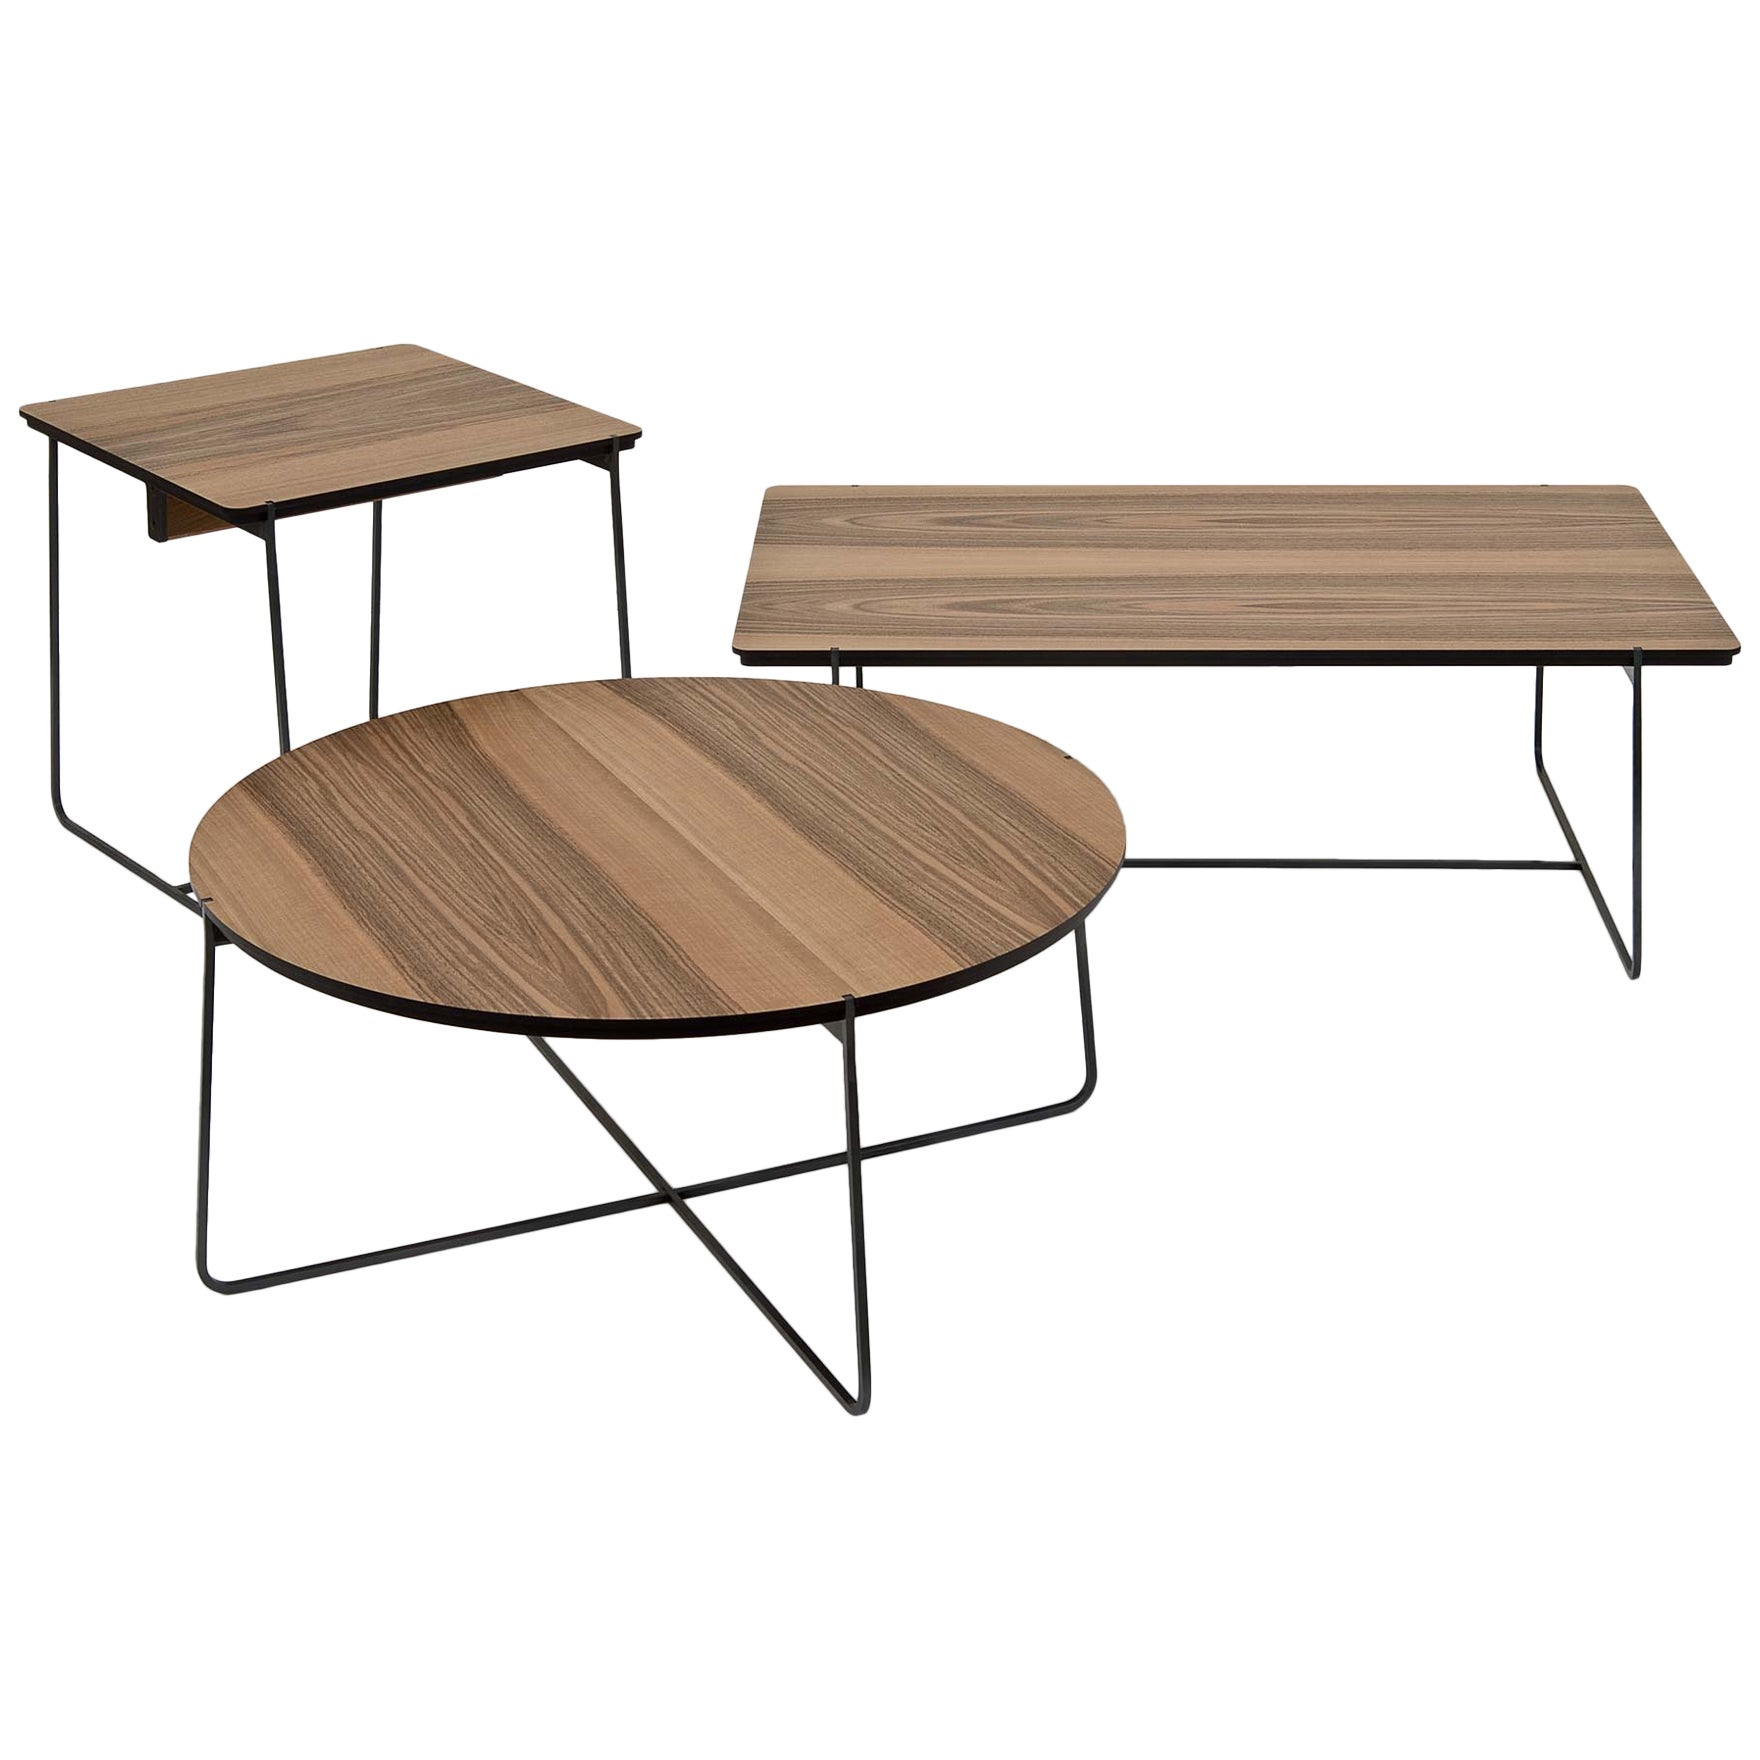 """""""Cuvee XL"""" Low Rectangular Side Table by Stephane Lebrun for Dessie'"""